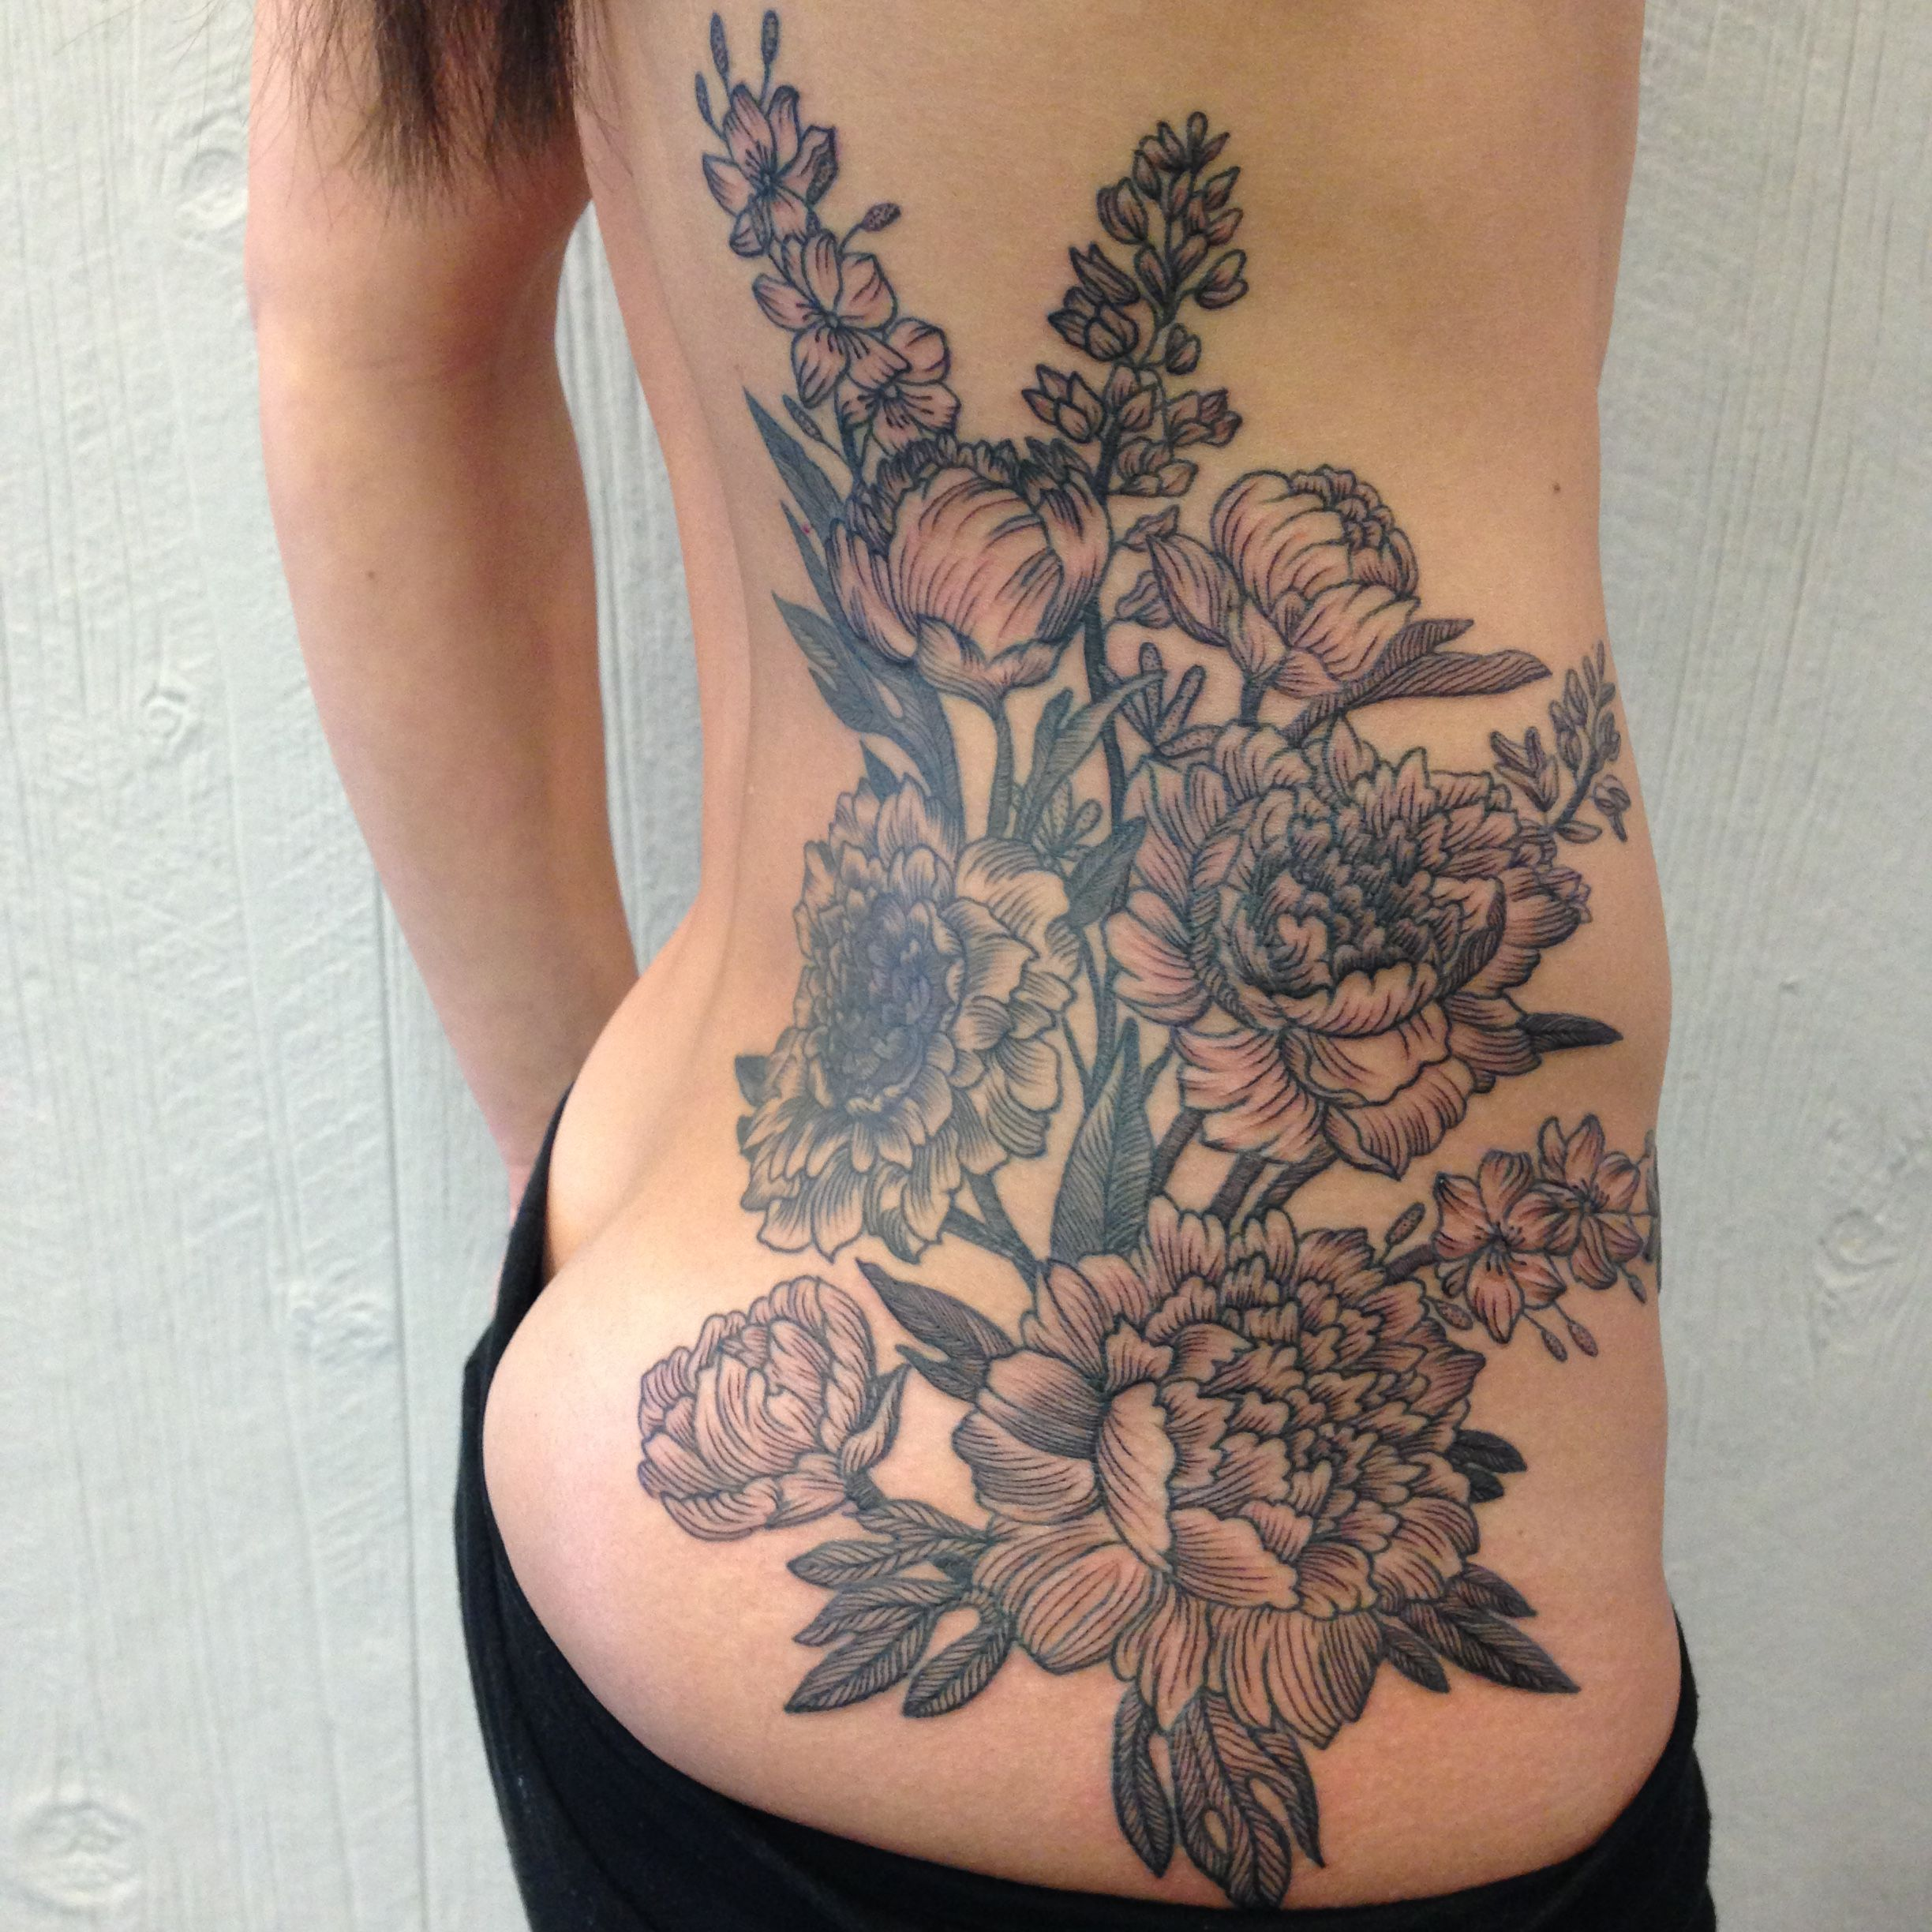 Tattoo Ideas Kerry: Botanical Black Work Cover-up By Kerry Henderson, Heart Of